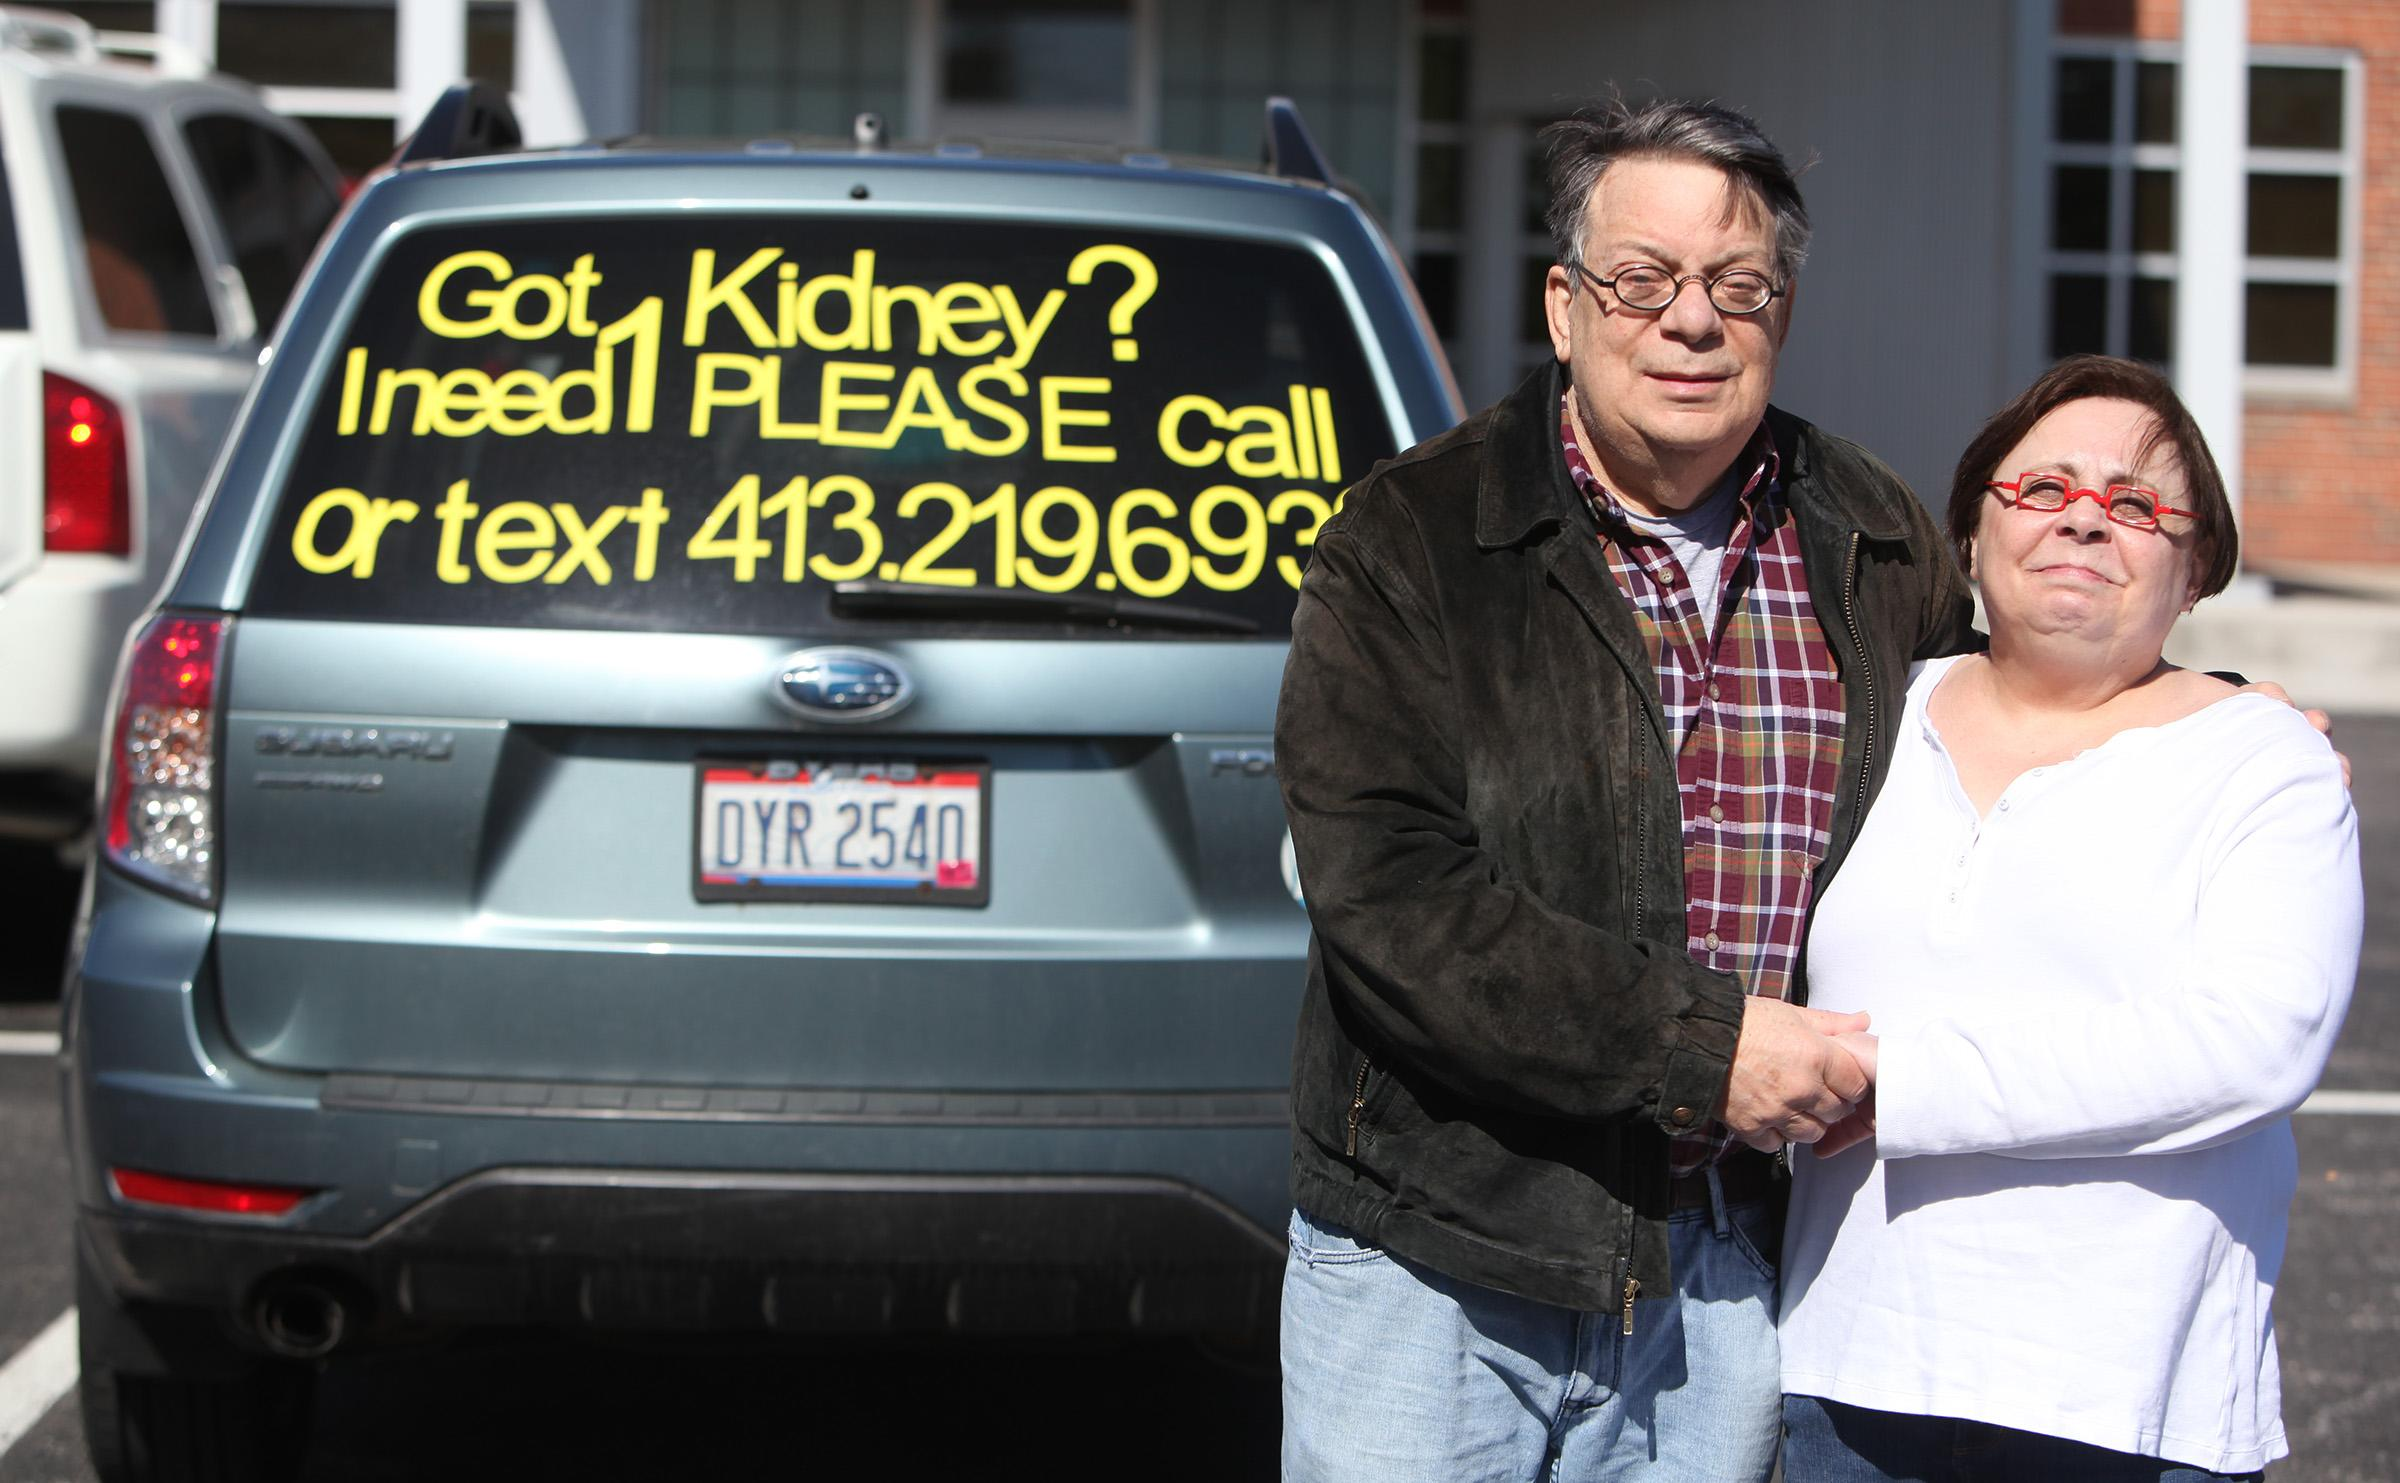 Ohio man posts message on his SUV: 'Got kidney? I need 1'